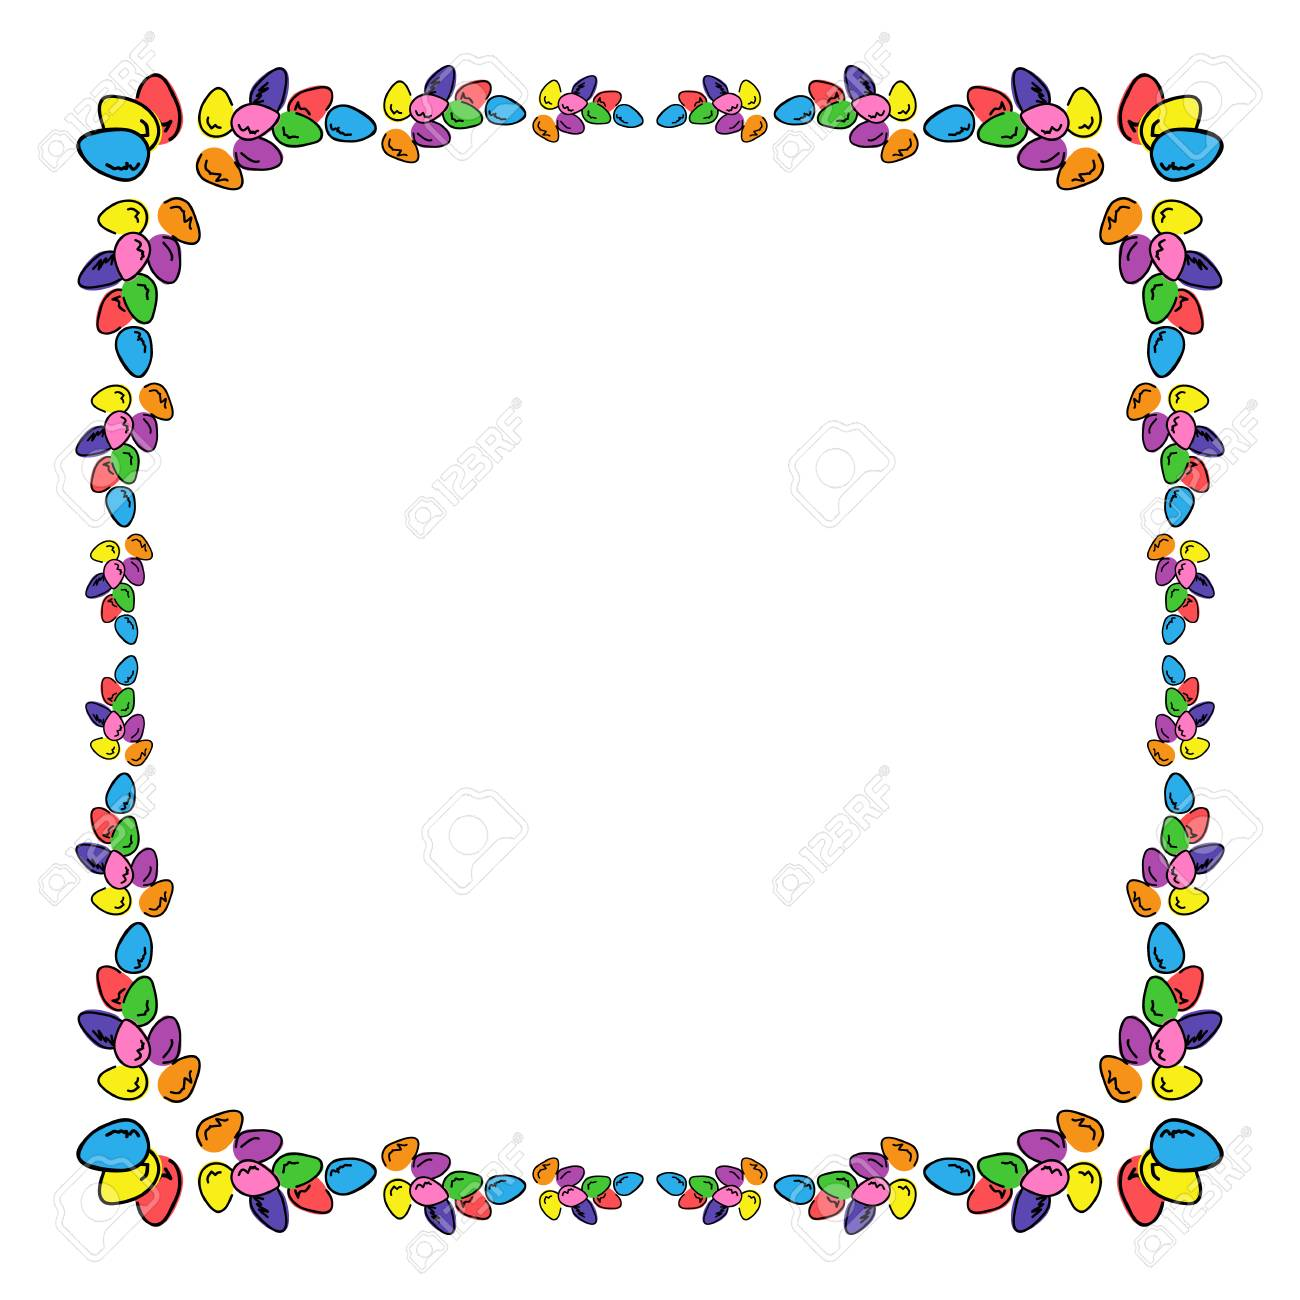 Easter Eggs Colored Square Photo Frame Multicolored Bright Border